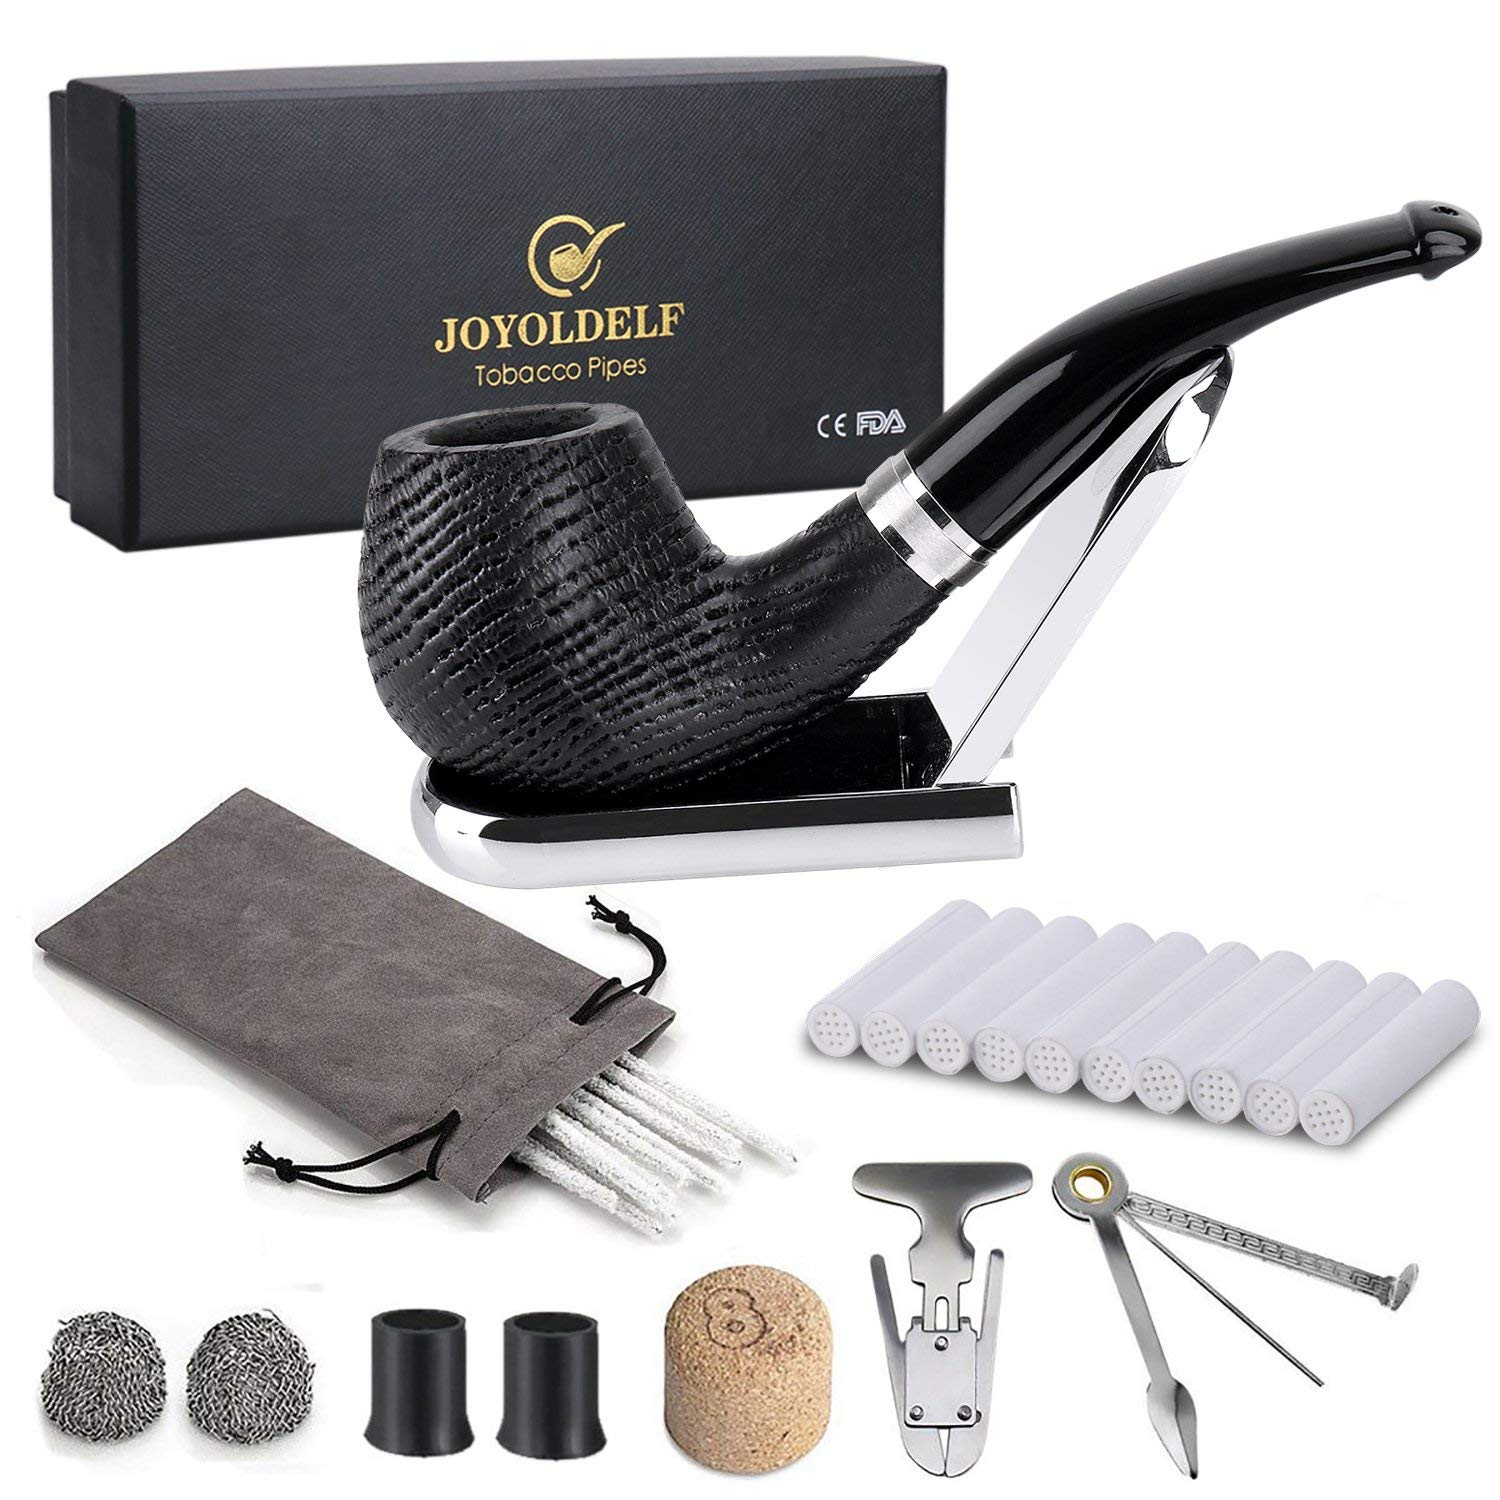 Joyoldelf Oak Tobacco Pipe Set, Wooden Pipe with Foldable Stand, Reamer, 3-in-1 Pipe Scraper and Other Accessories, Bonus a Pipe Pouch with Gift Box by Joyoldelf